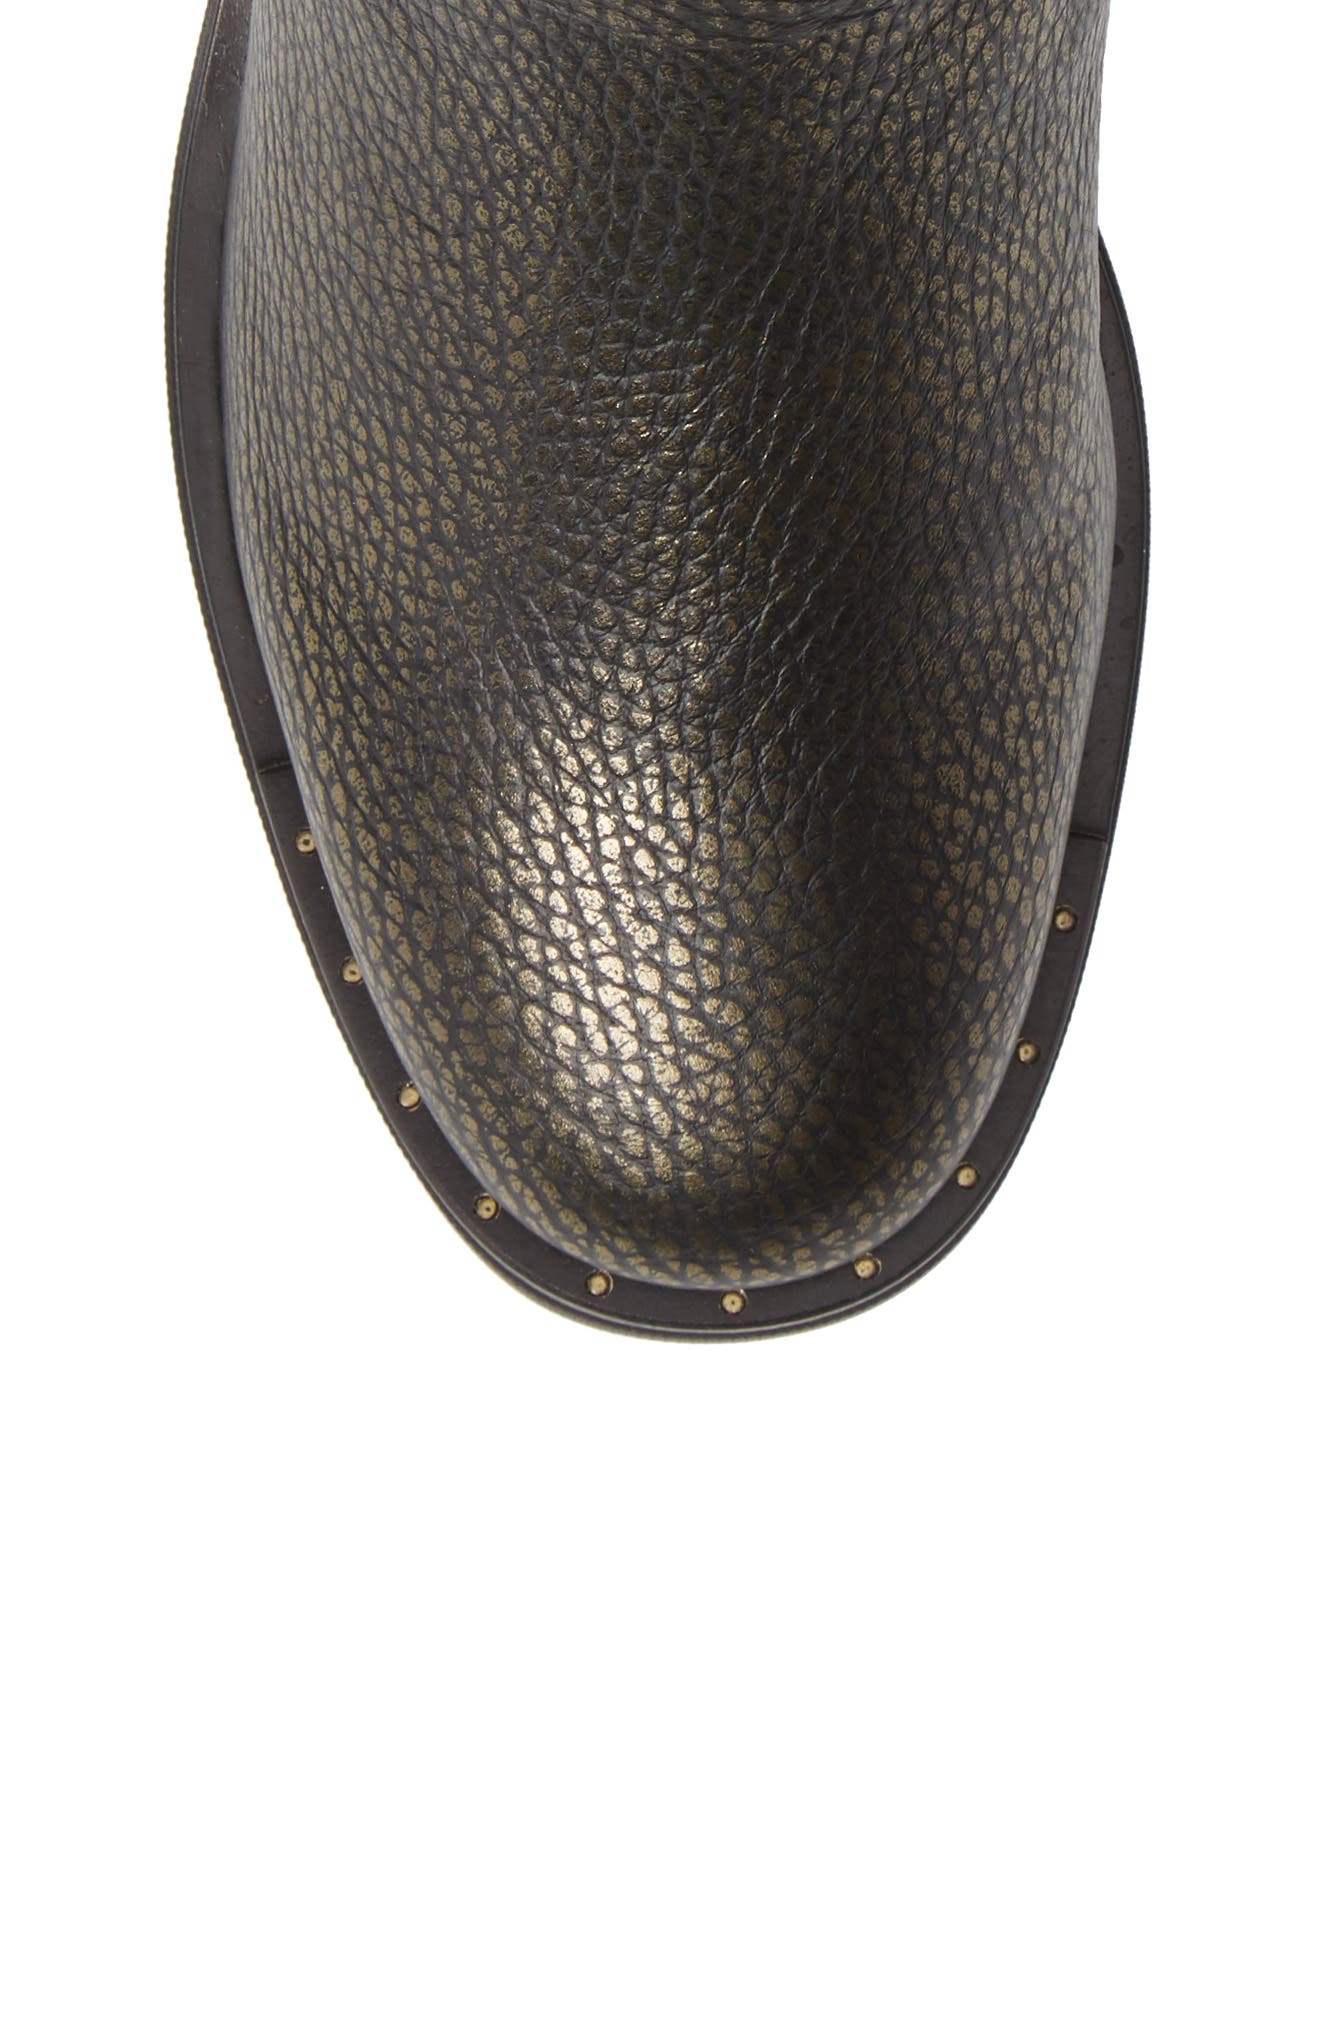 Via Moto Bootie,                             Alternate thumbnail 5, color,                             METAL ARMY LEATHER